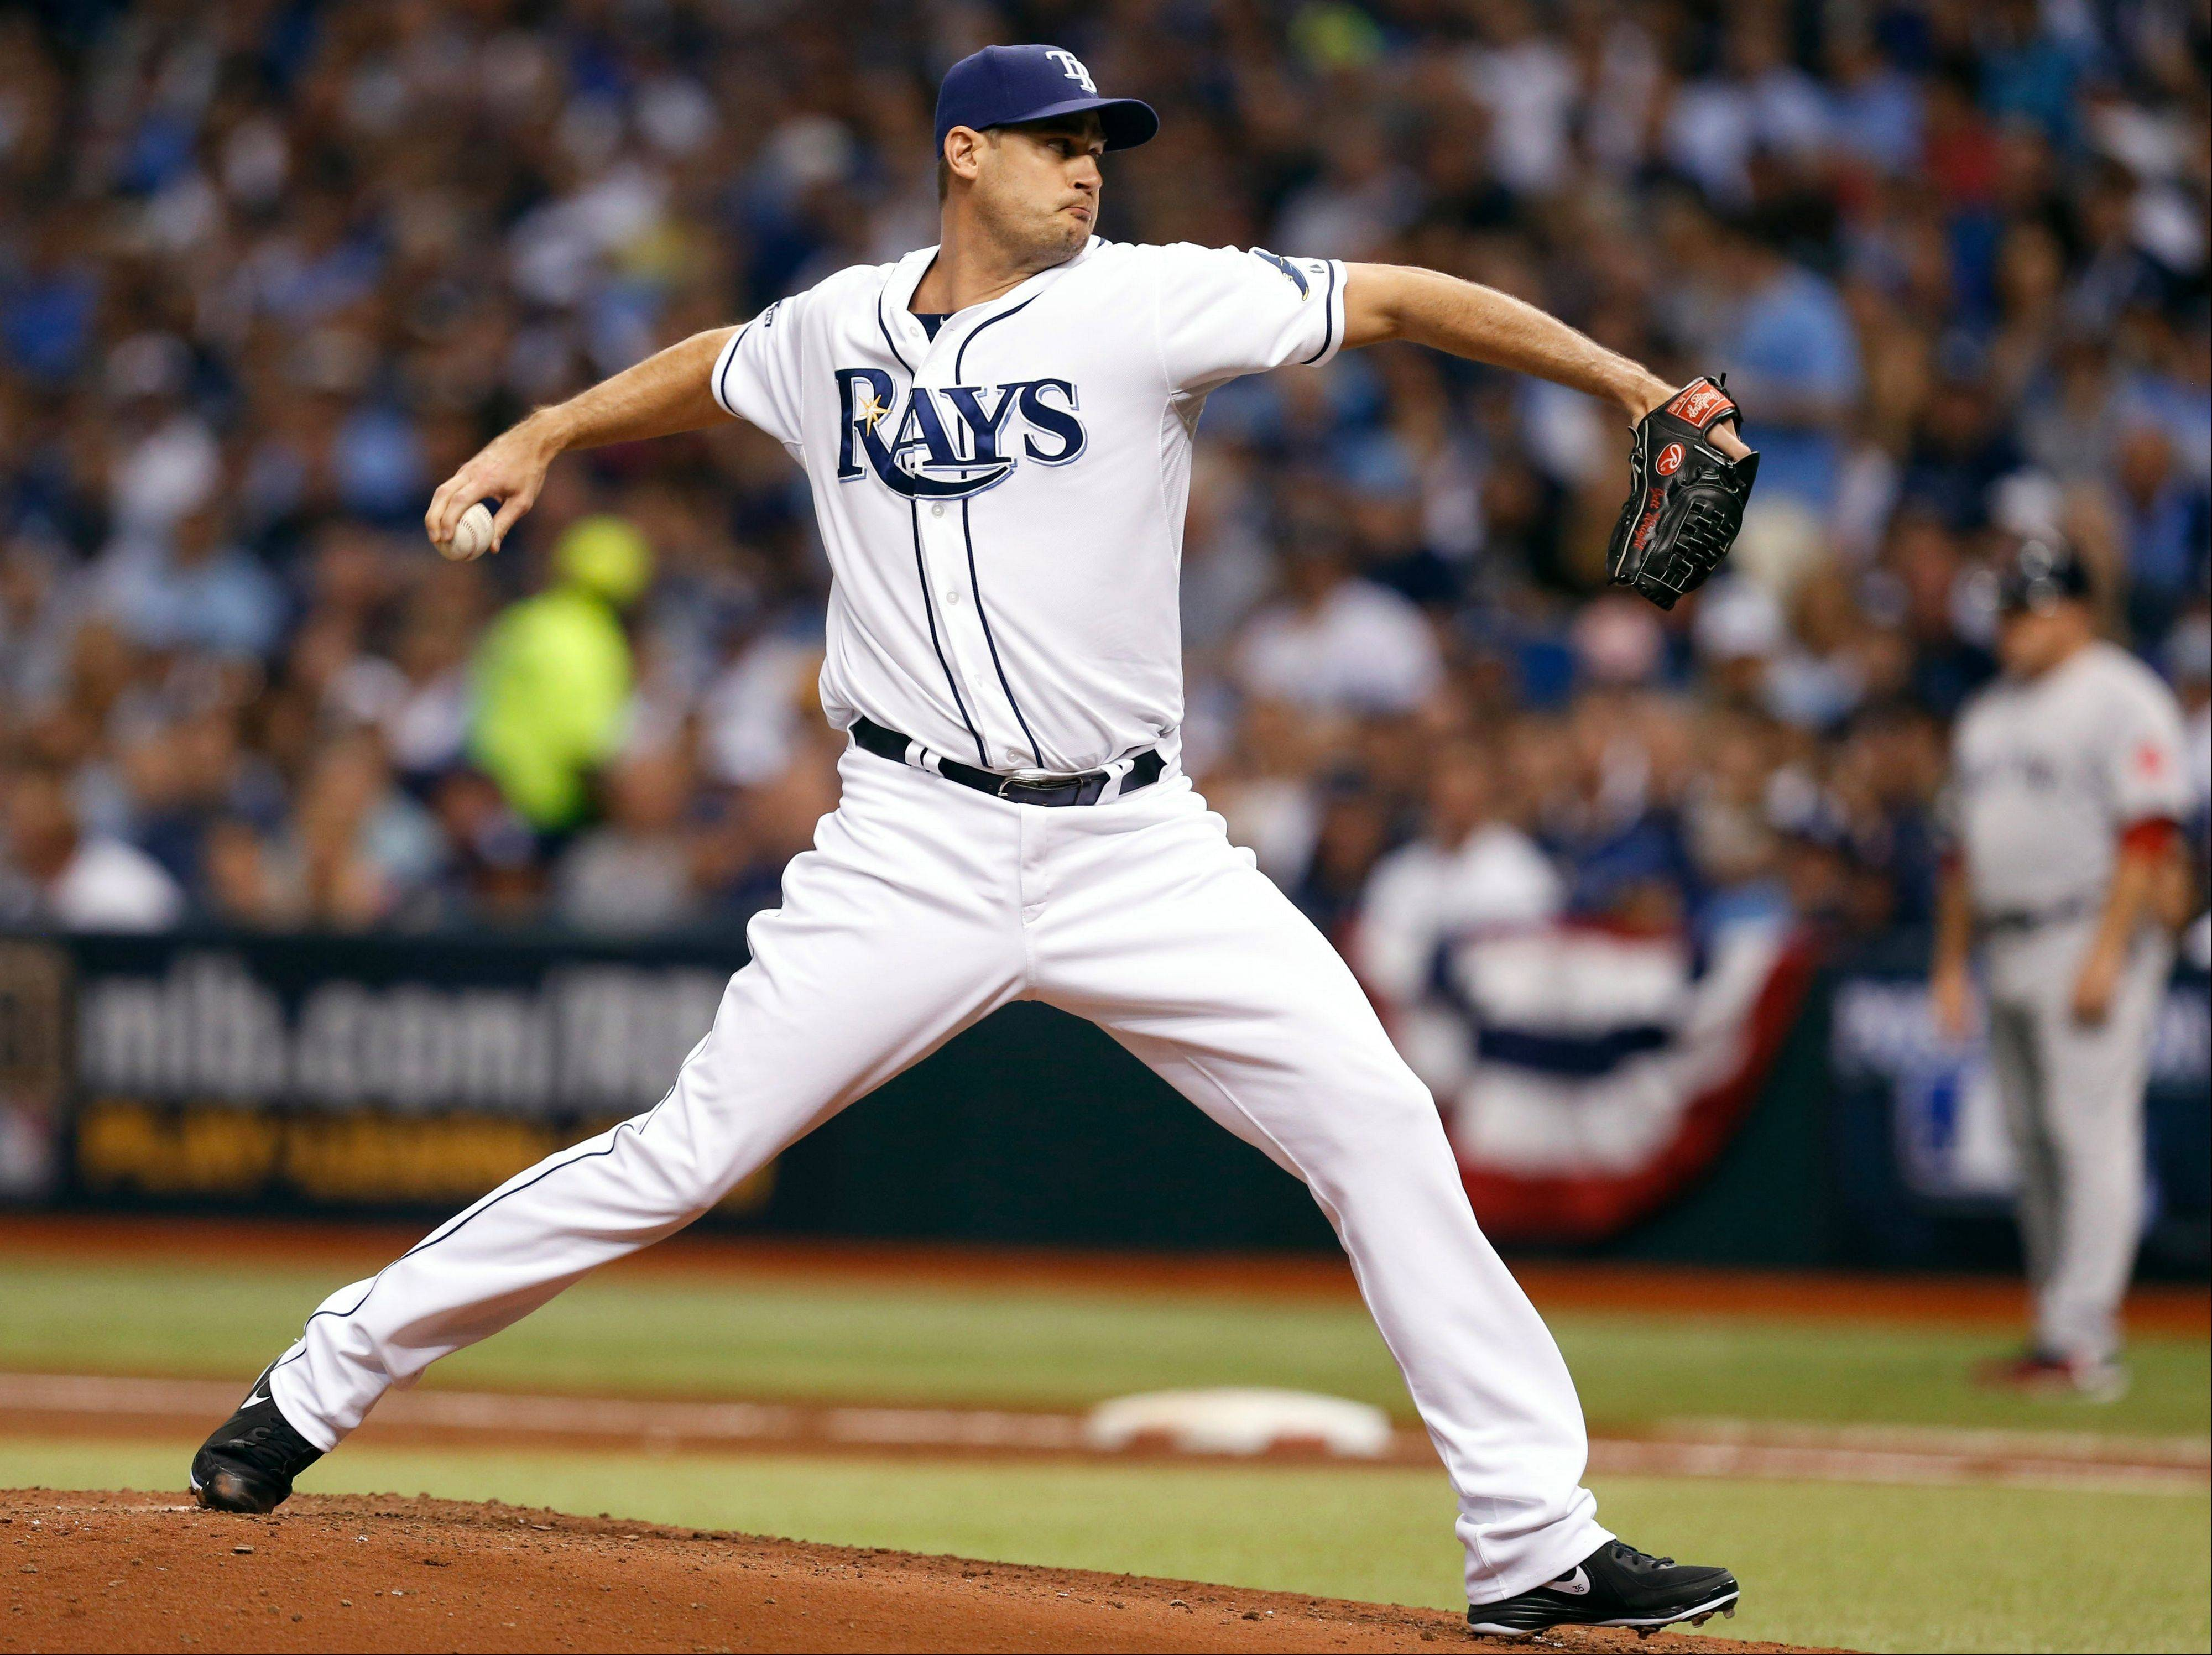 Tampa Bay Rays relief pitcher Jamey Wright throws in the second inning in Game 4 of an American League Division Series against the Boston Red Sox on Tuesday in St. Petersburg, Fla.